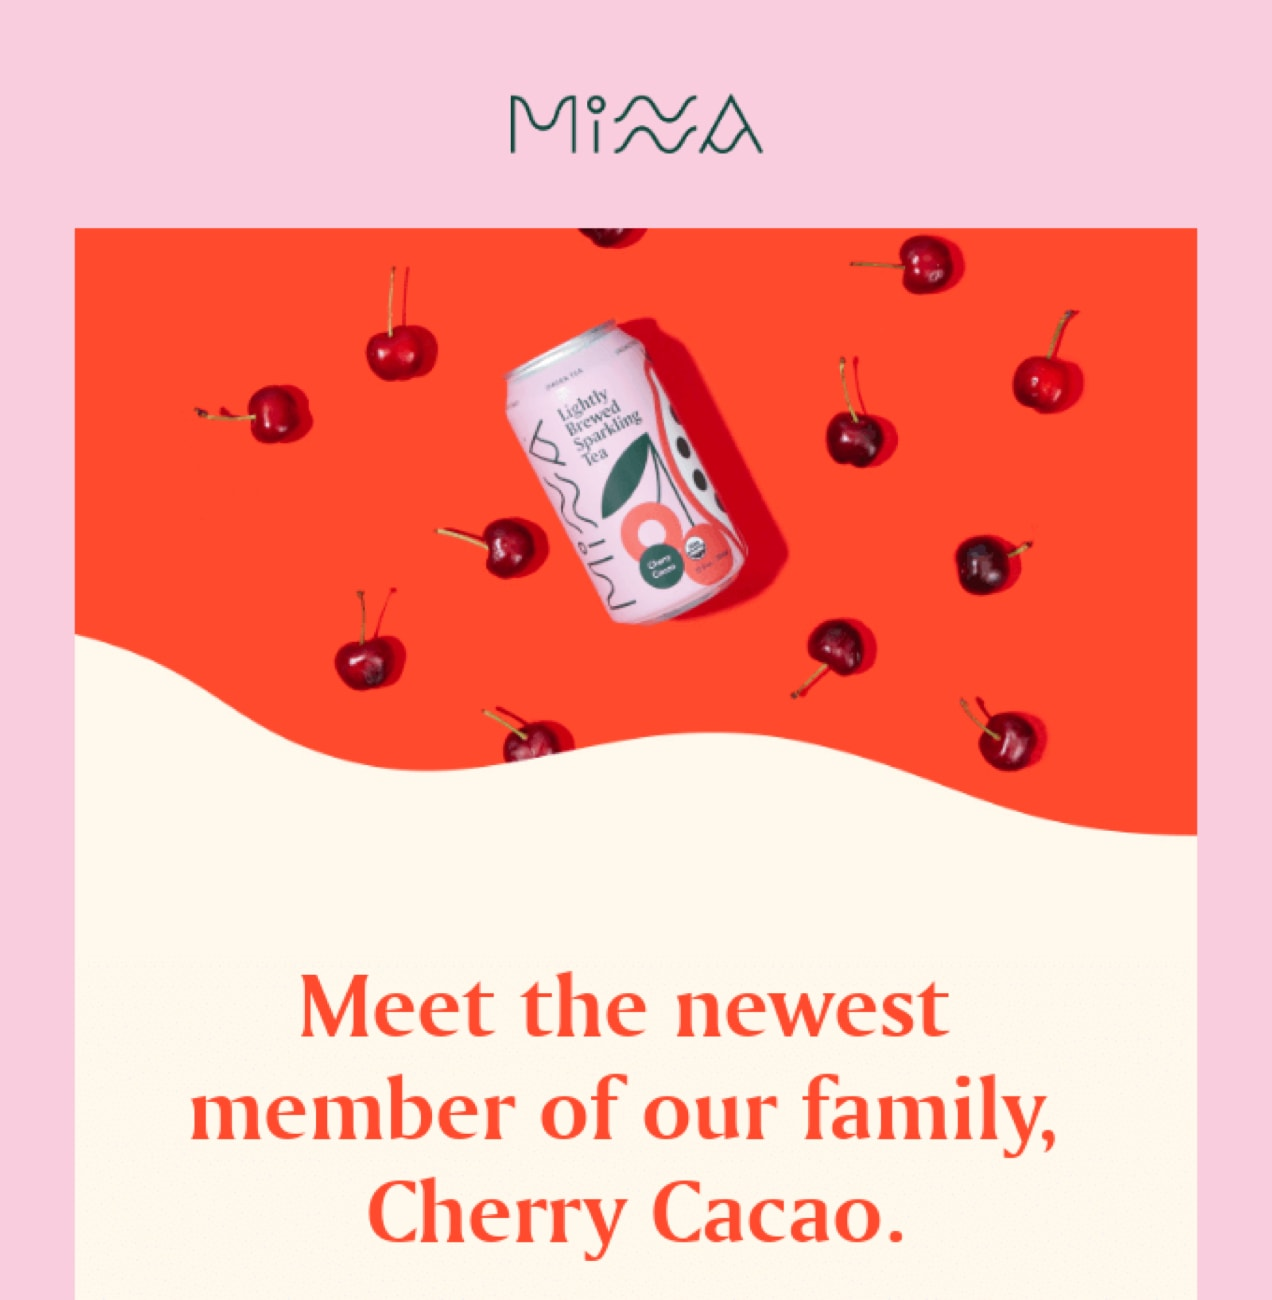 A designed email from Minna with bright colors and patterns